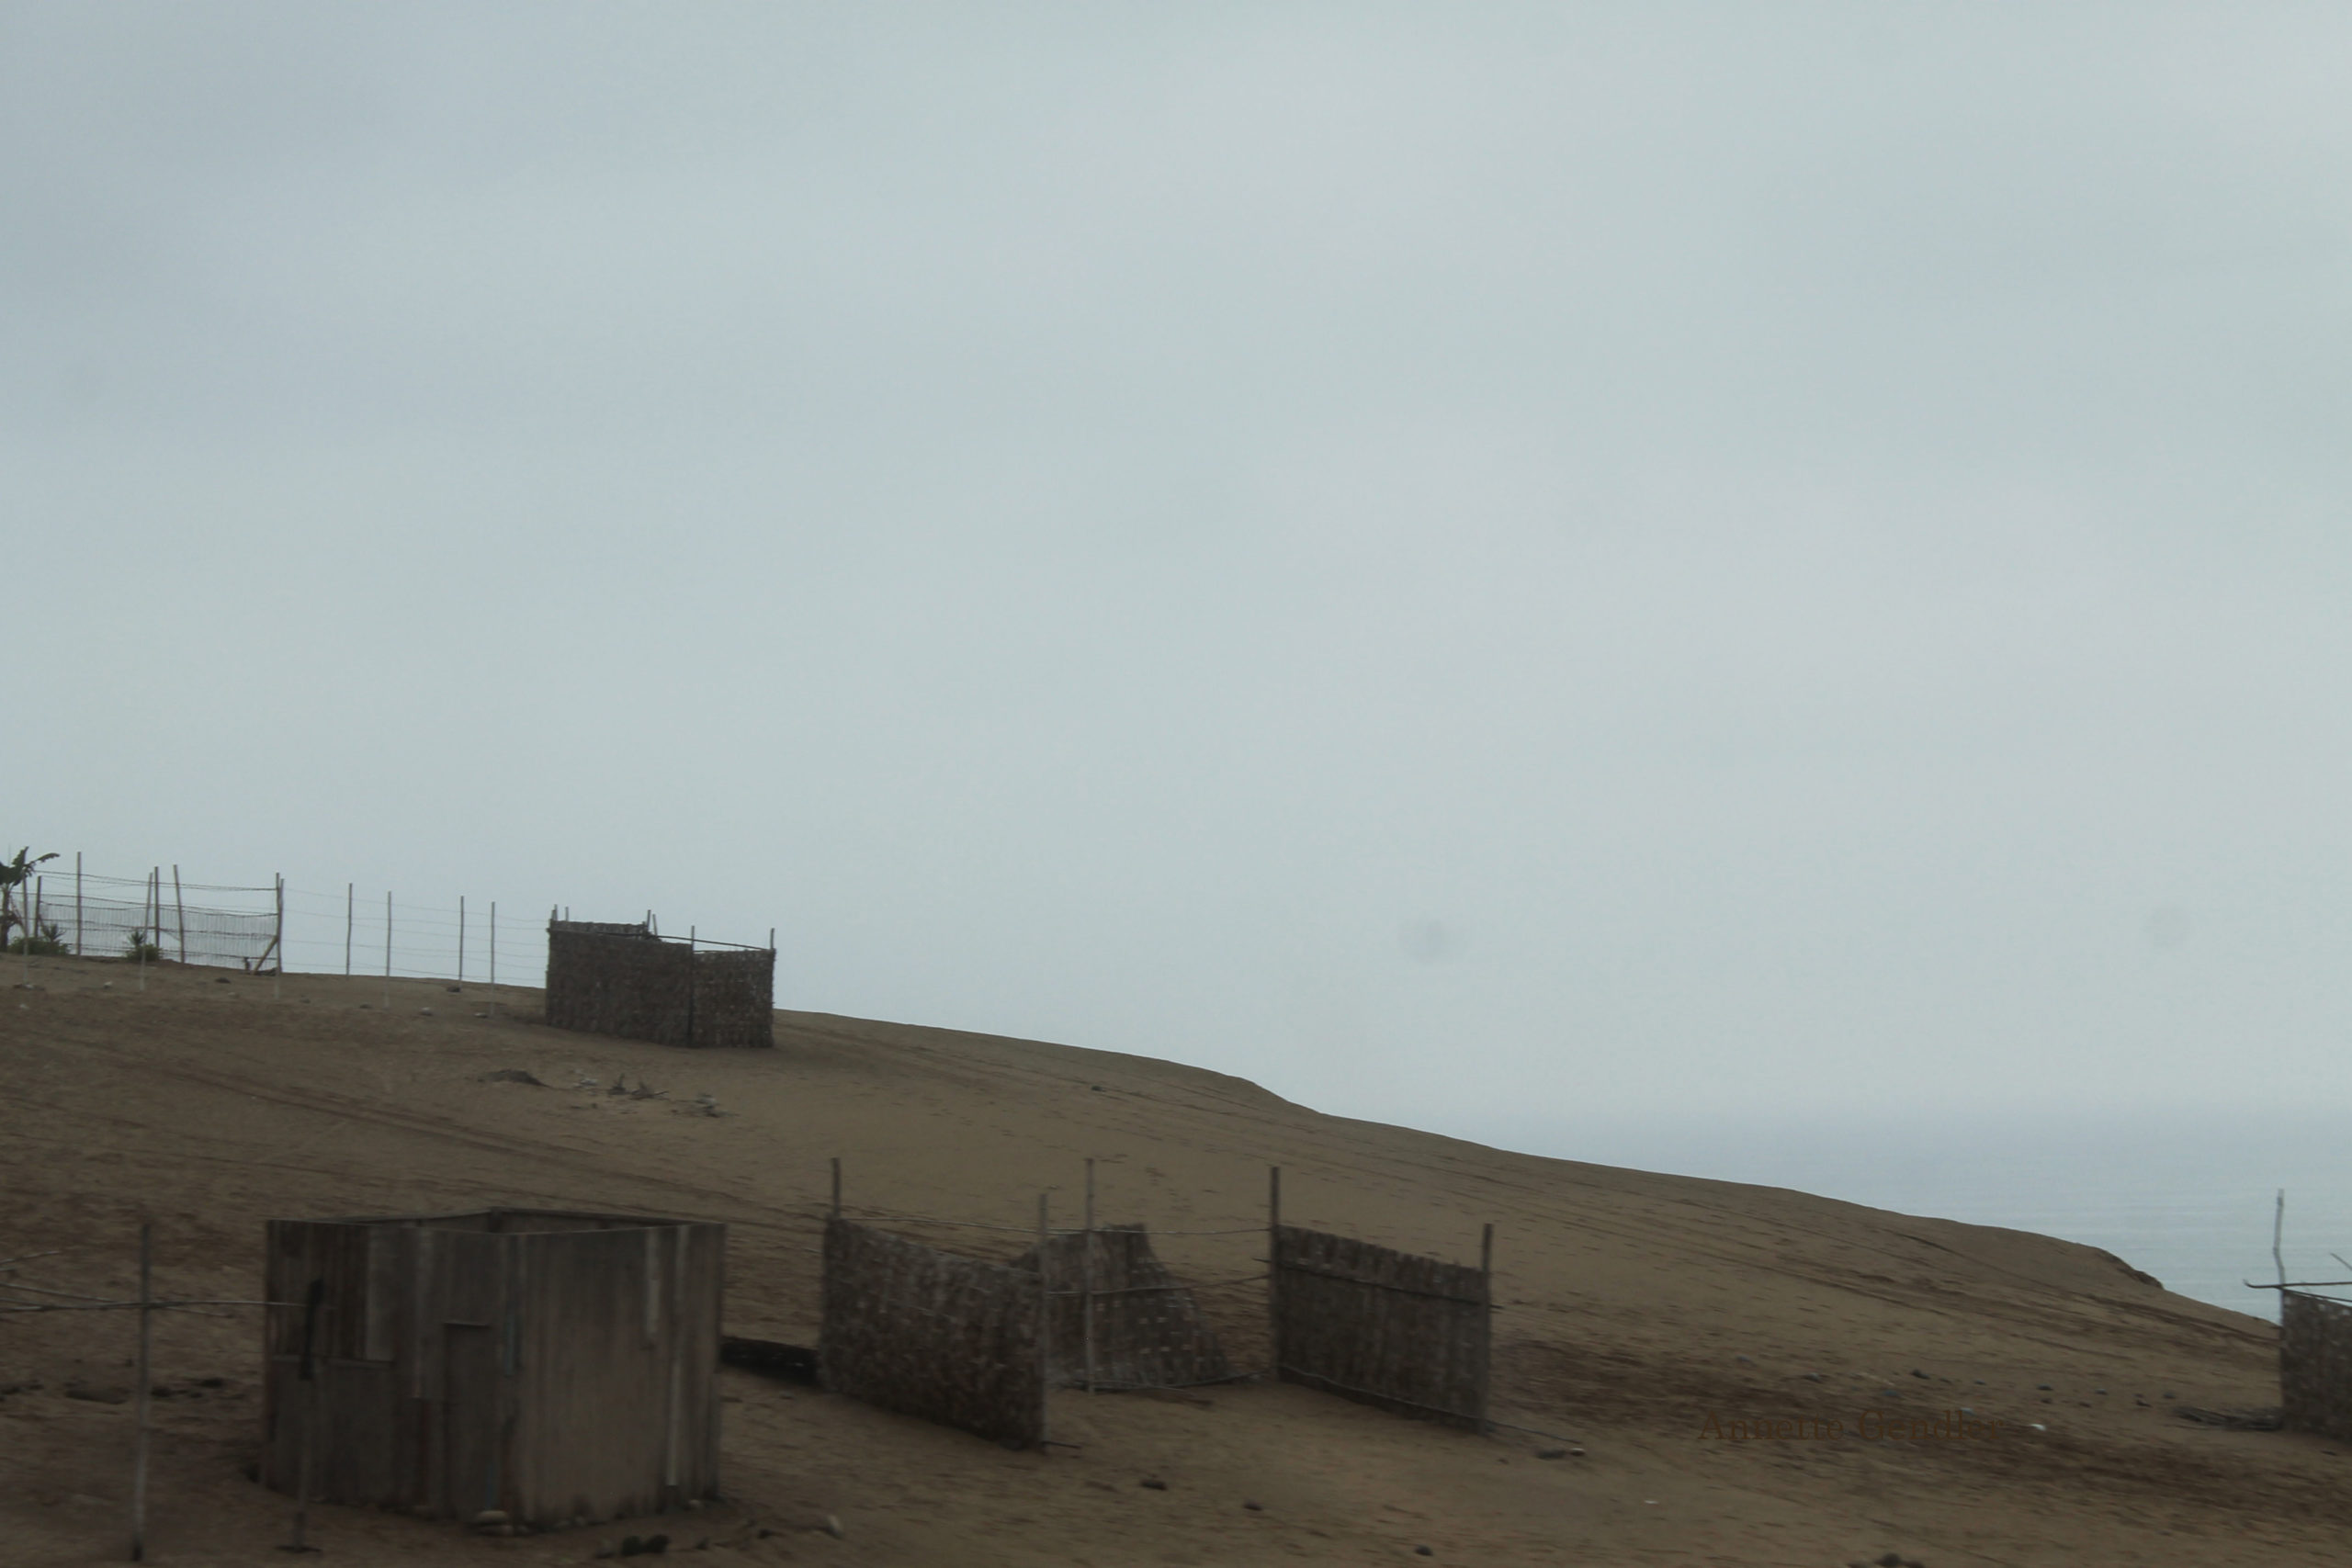 Ruins of shanty town reed huts on a sand dune on the coast of Peru